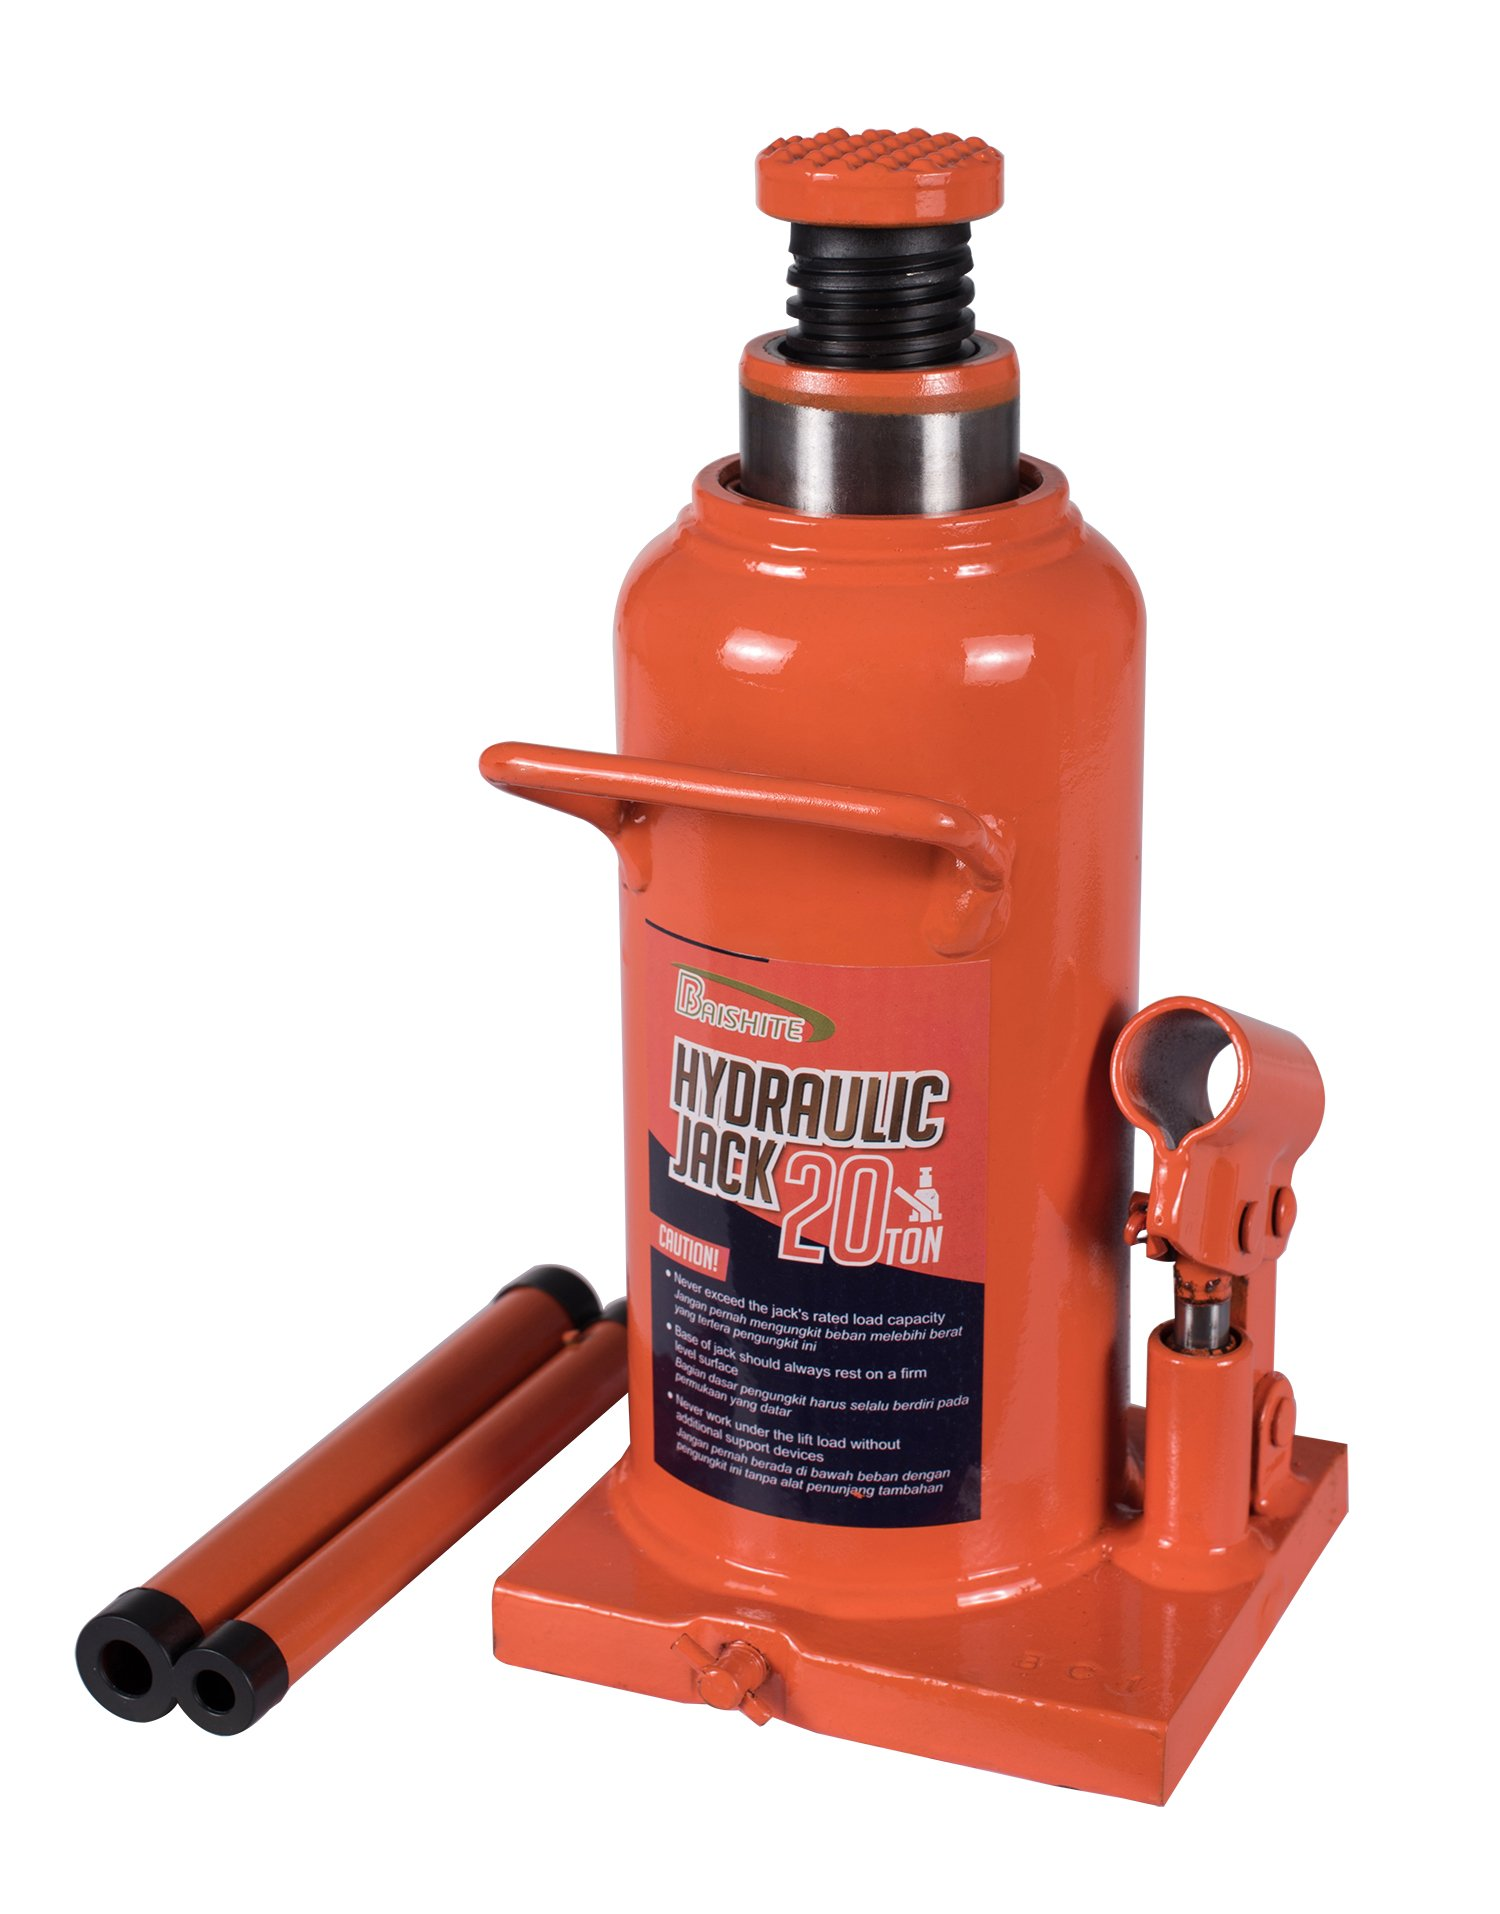 BAISHITE Welding Hydraulic Bottle Jack 16 Ton Capacity Orange by BAISHITE